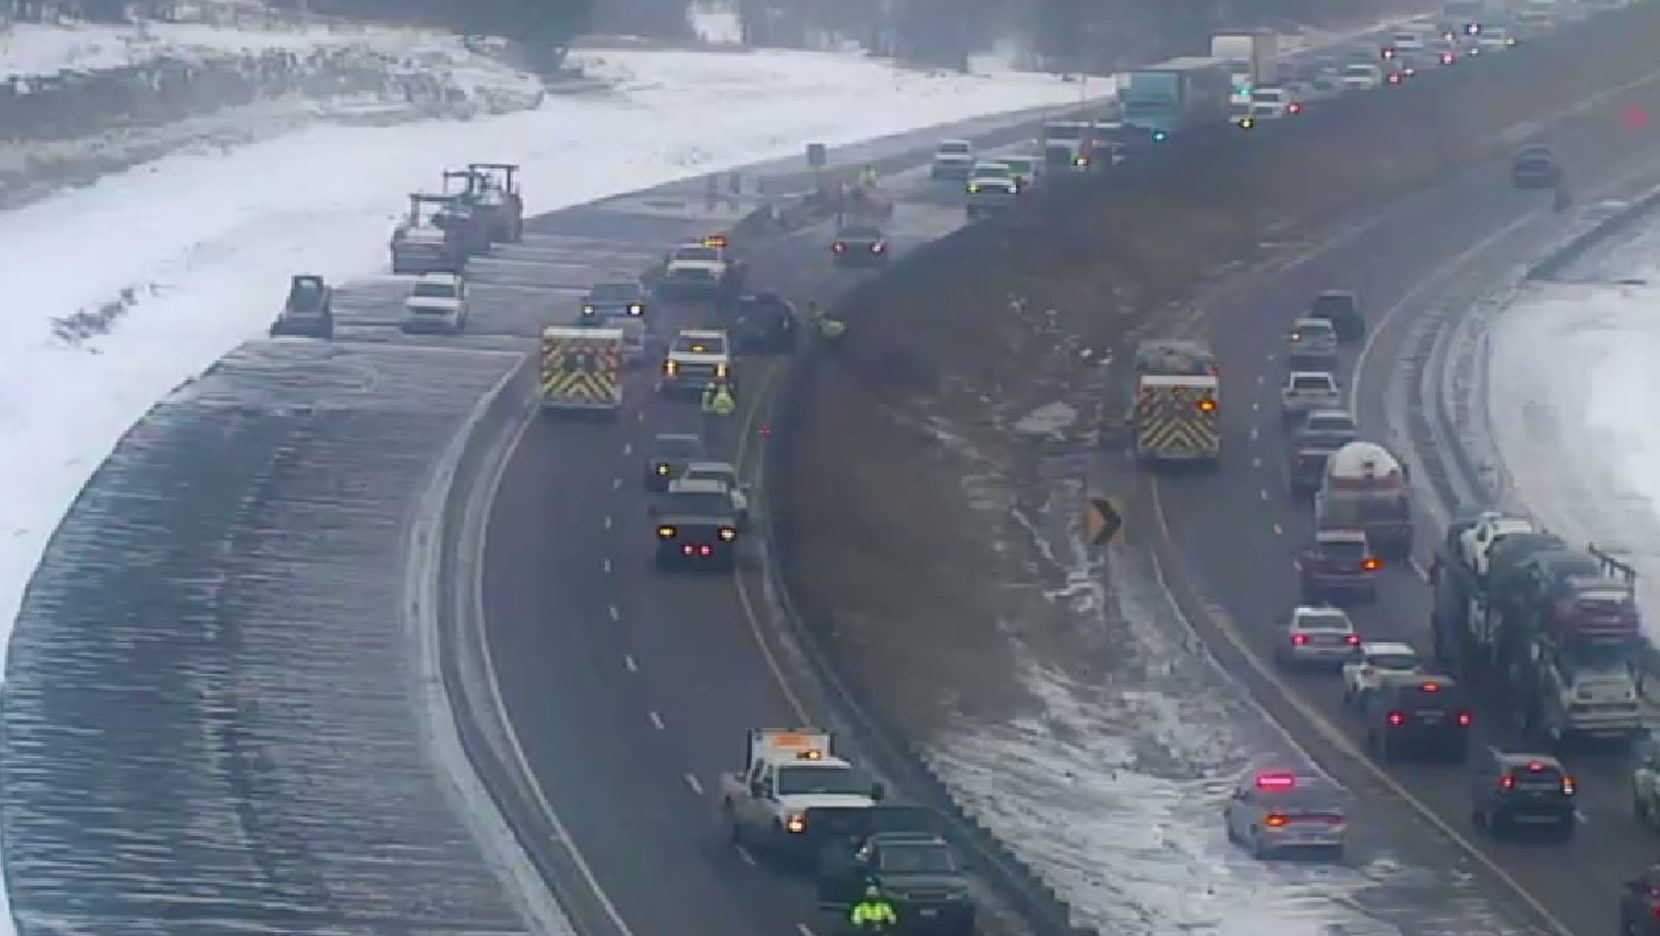 Crash on I-25 near Greenland, Colo. on Feb. 19, 2020. (Image from CDOT camera)